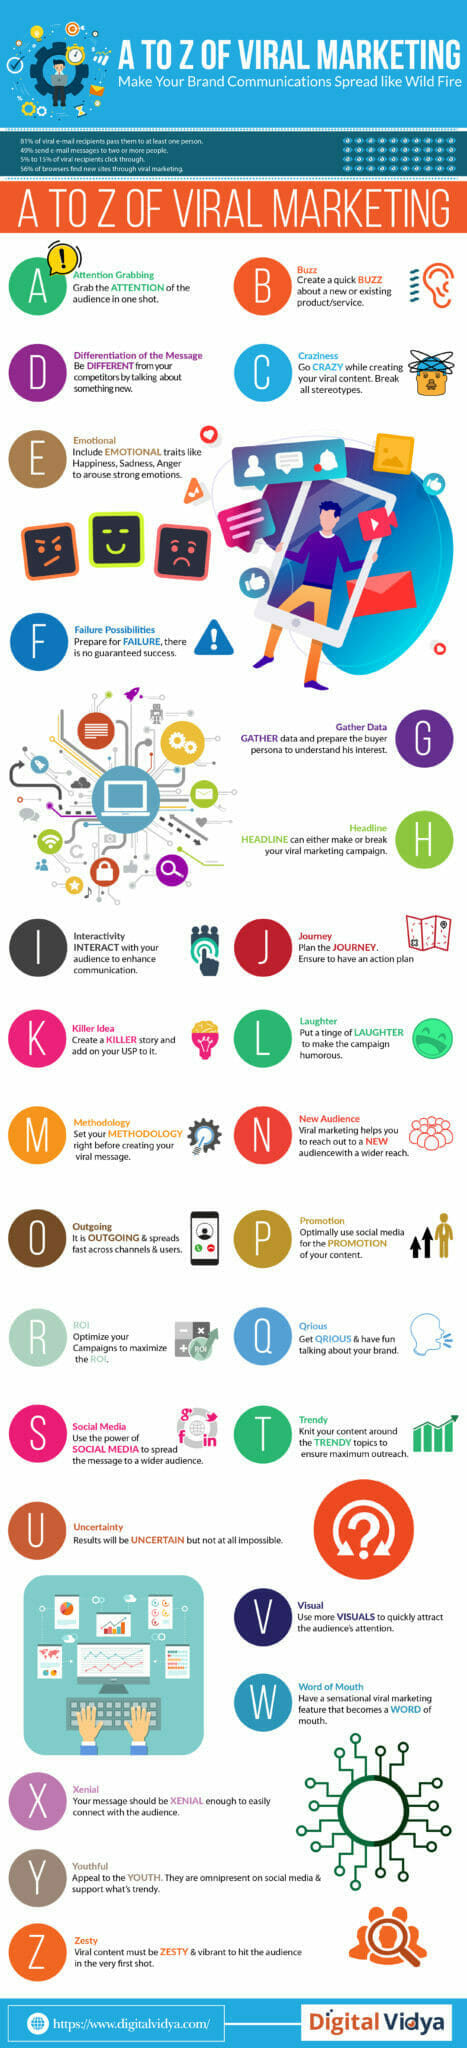 A to Z of viral marketing IG